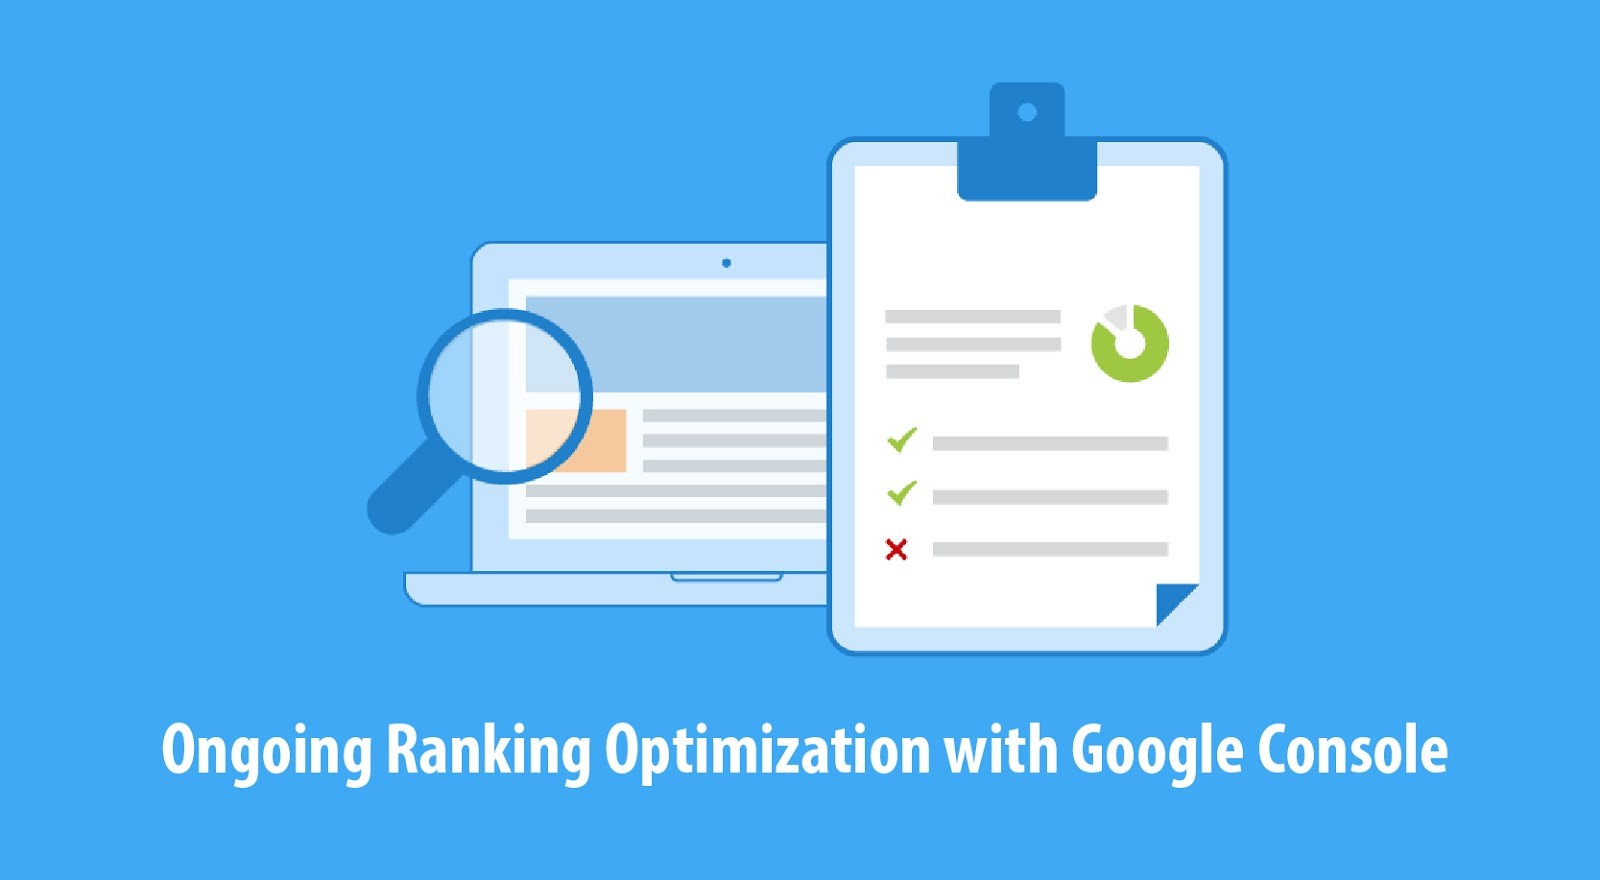 Ongoing Ranking Optimization with Google Console